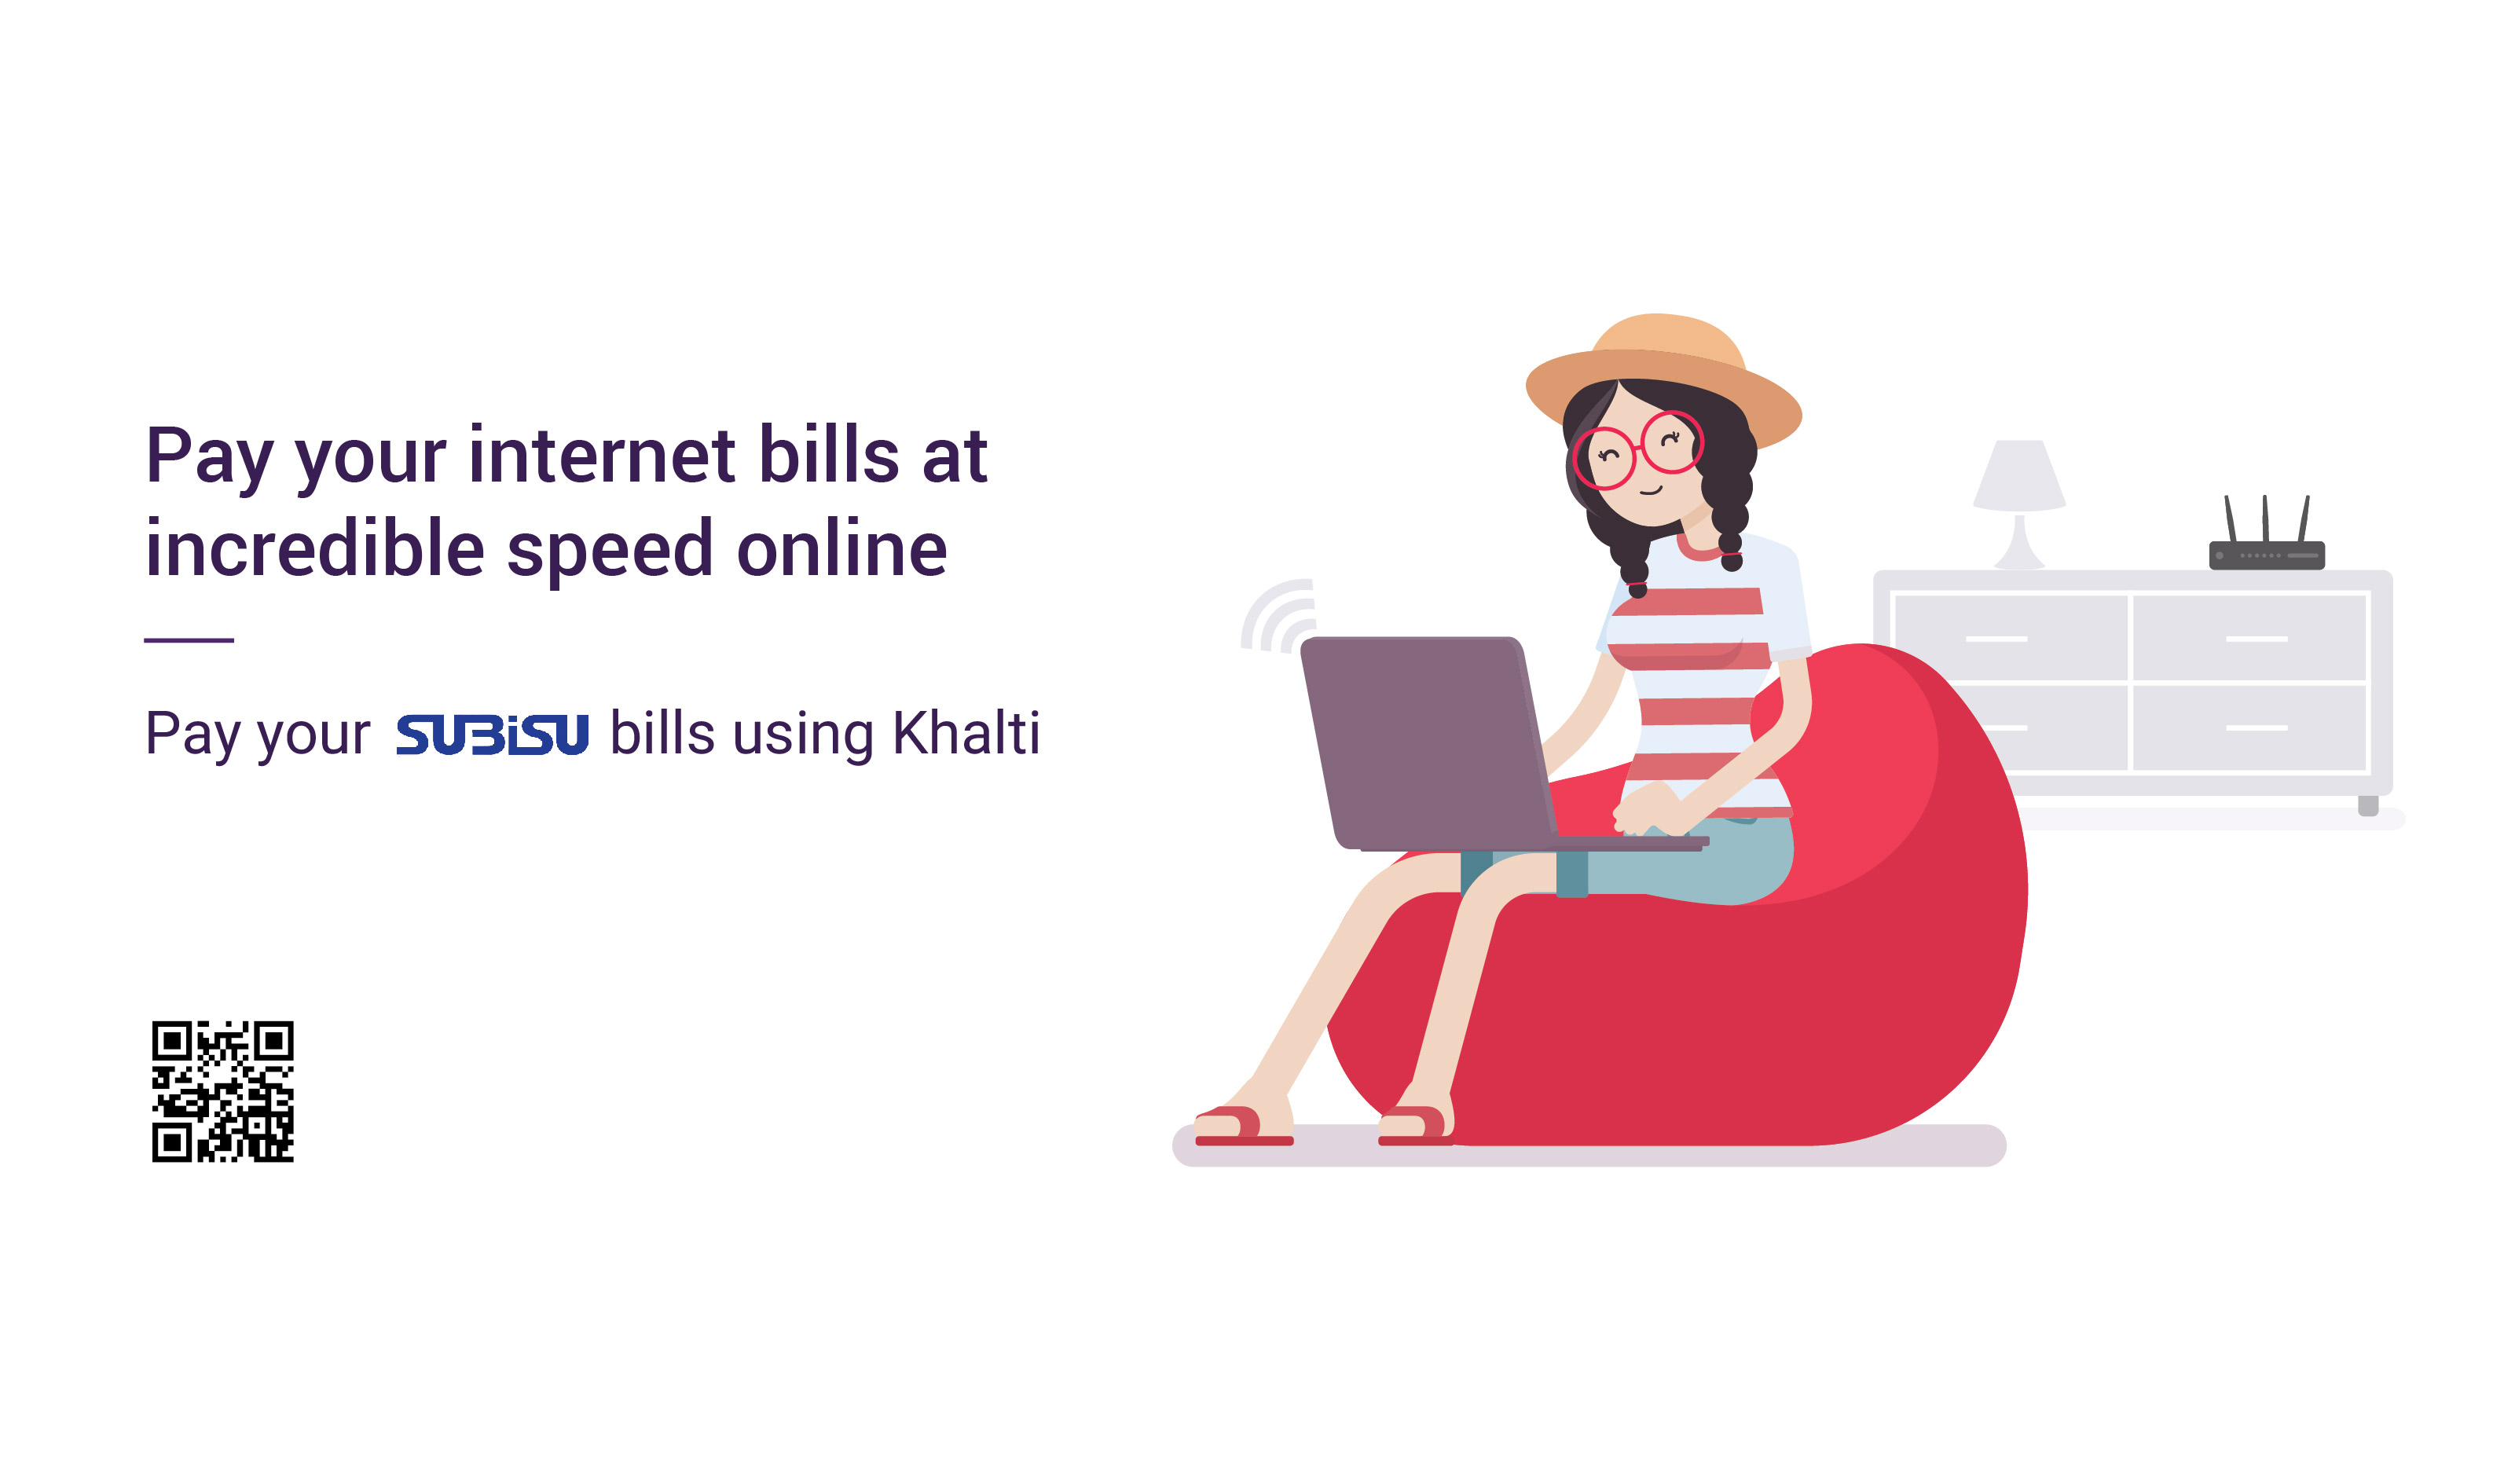 How to pay Subisu Bill online using Khalti?